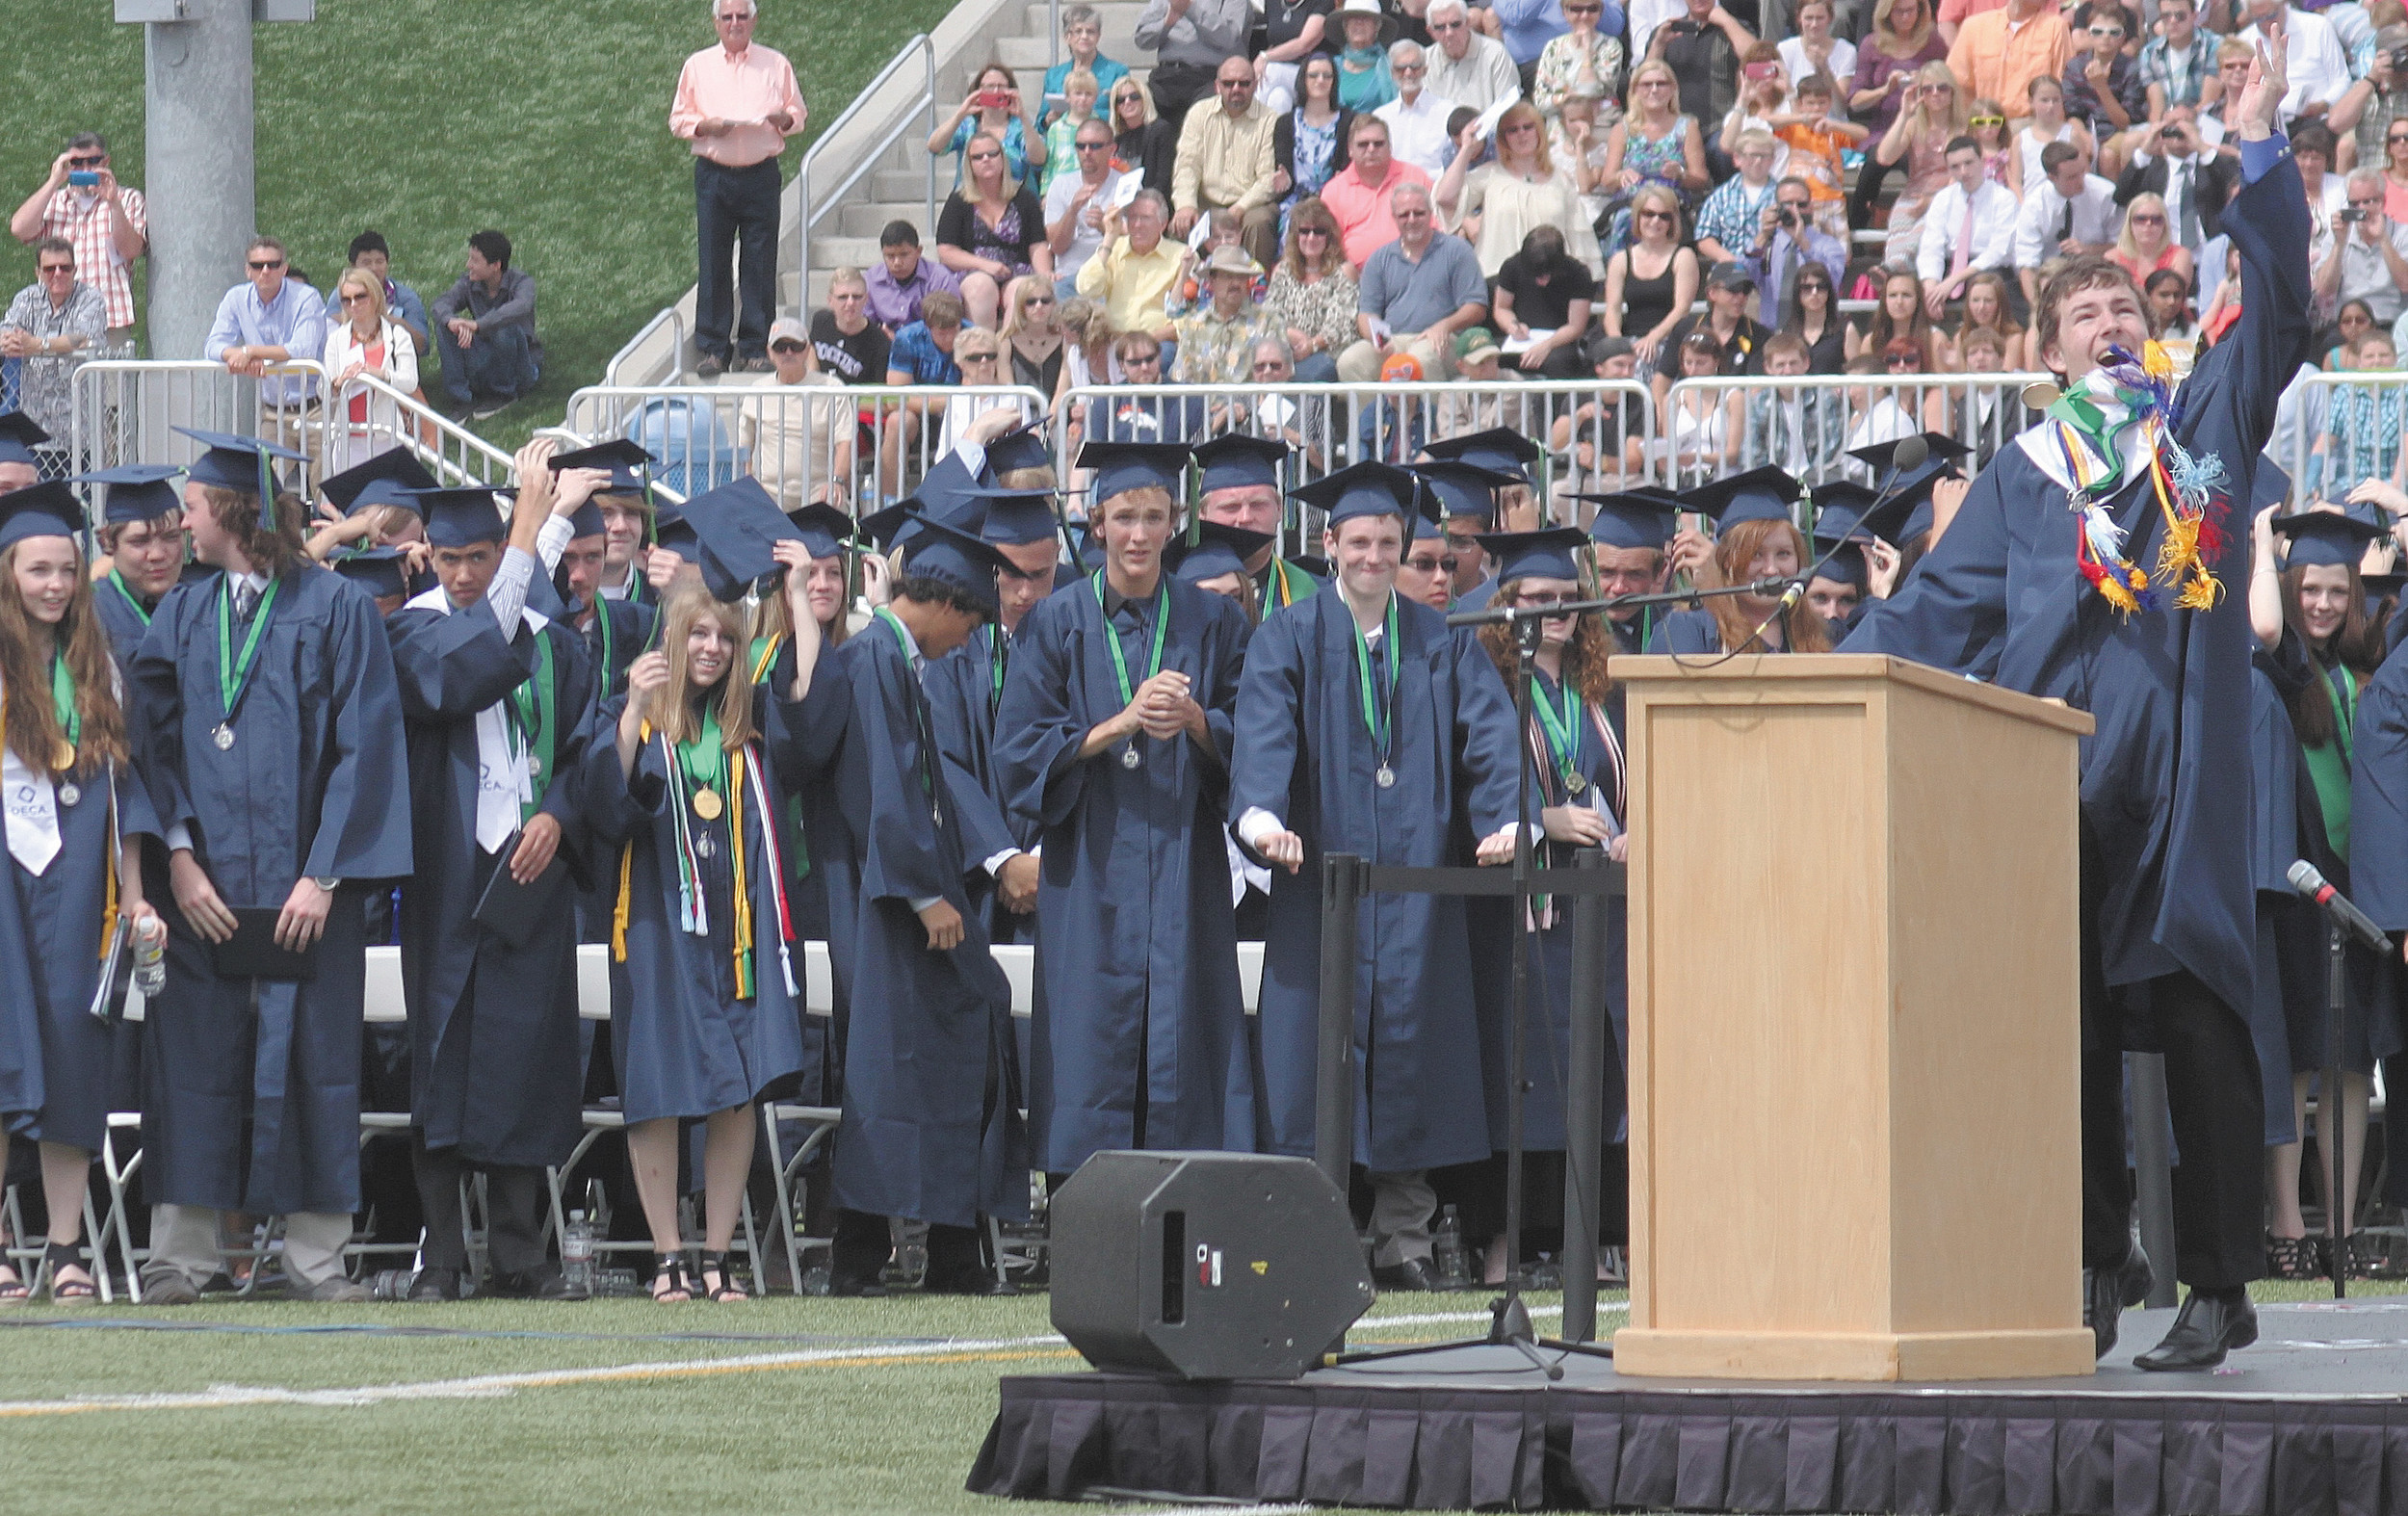 Valedictorian James Fair, right, is the first to toss his hat after instructing fellow students to turn their tassels at the end of the May 22 ThunderRidge High School graduation ceremony.